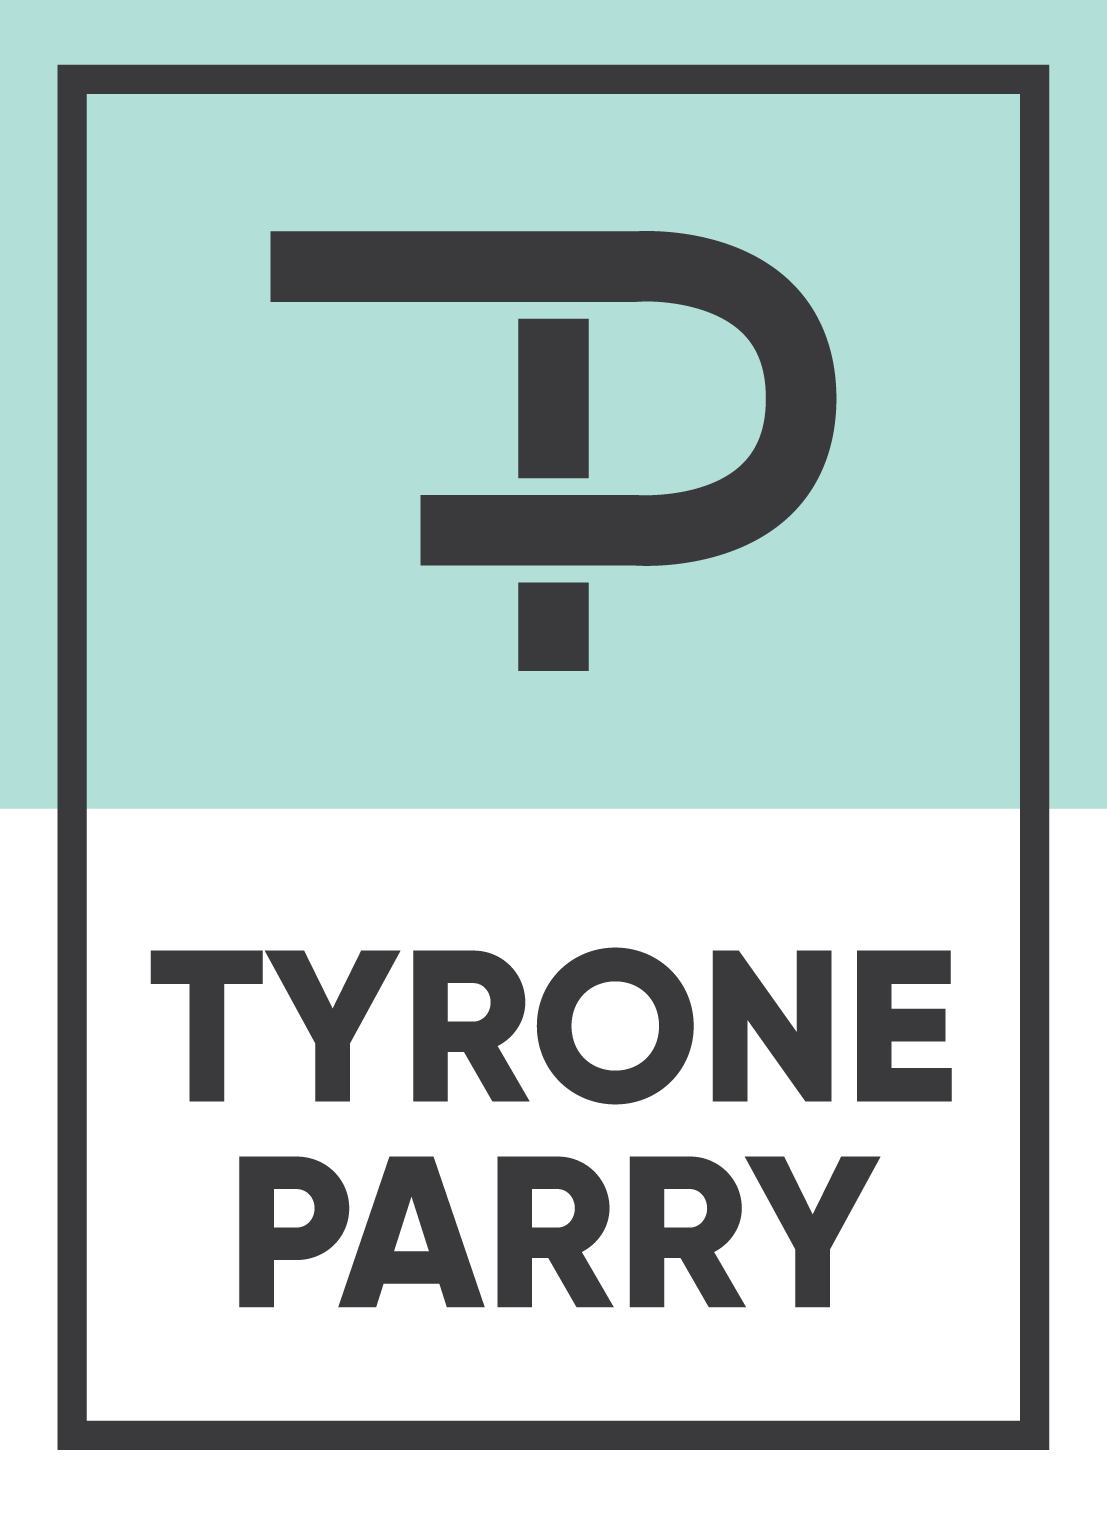 Tyrone Parry